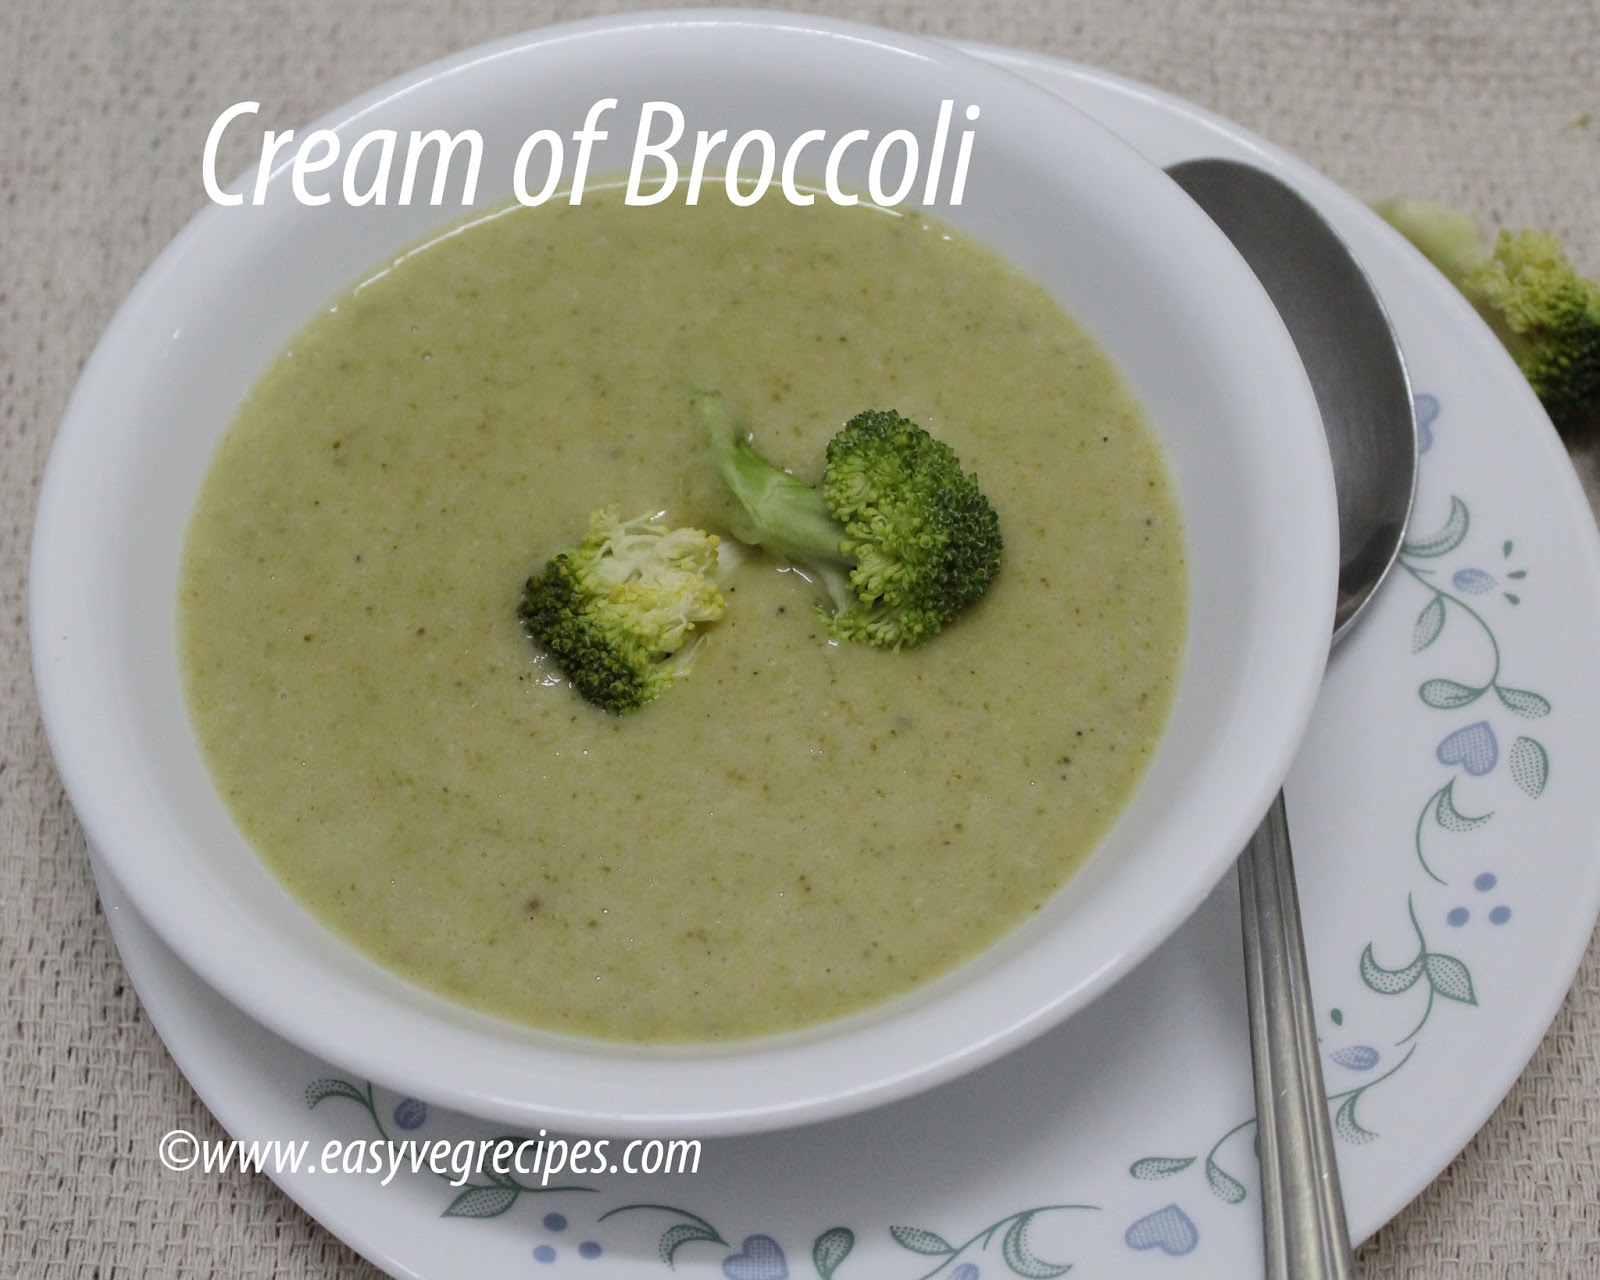 Cream of Broccoli